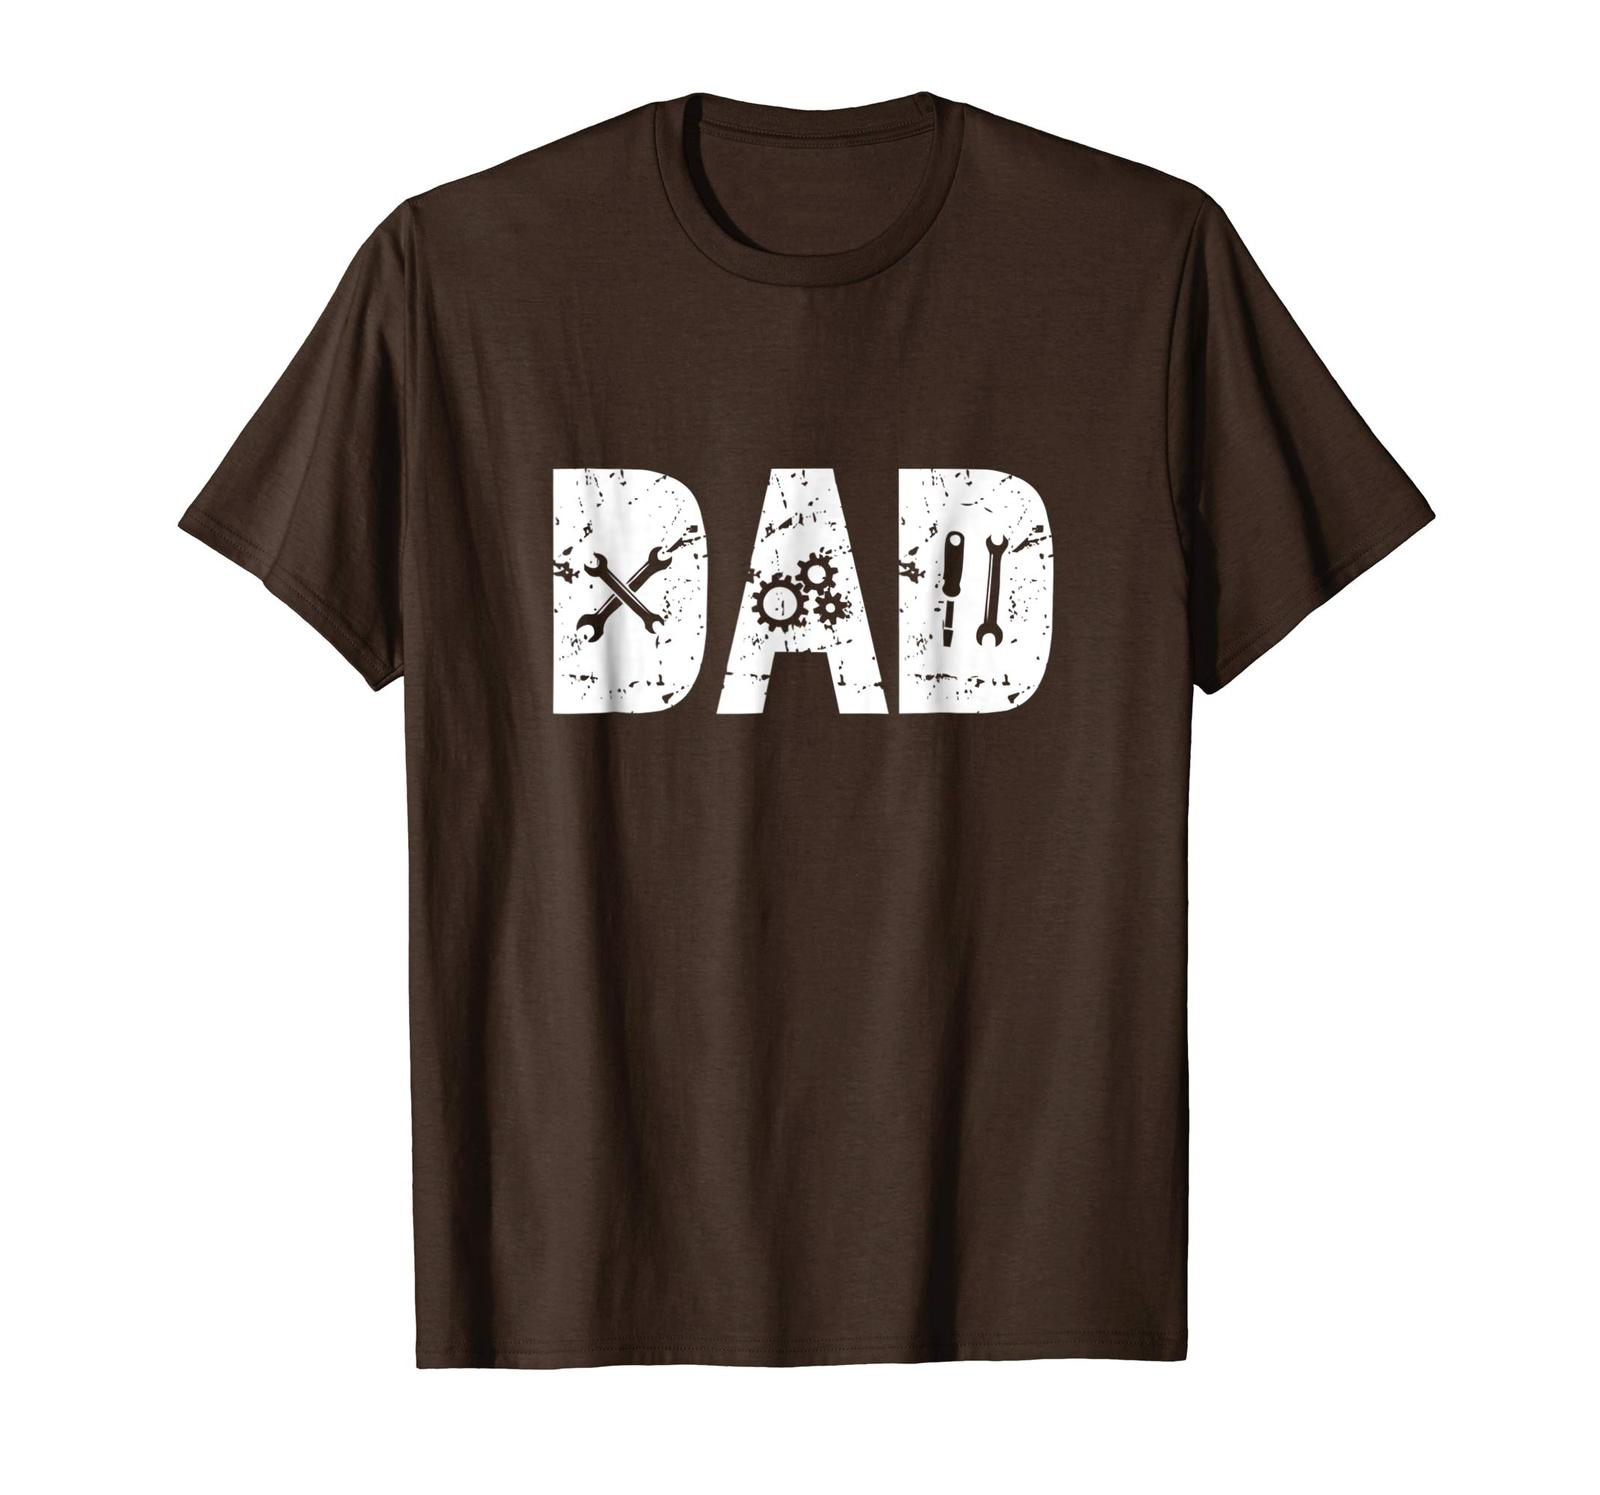 Dad Shirts - Funny Dad Gift Mechanic Shirts for Men Fathers Day 2018 Tee Men image 3